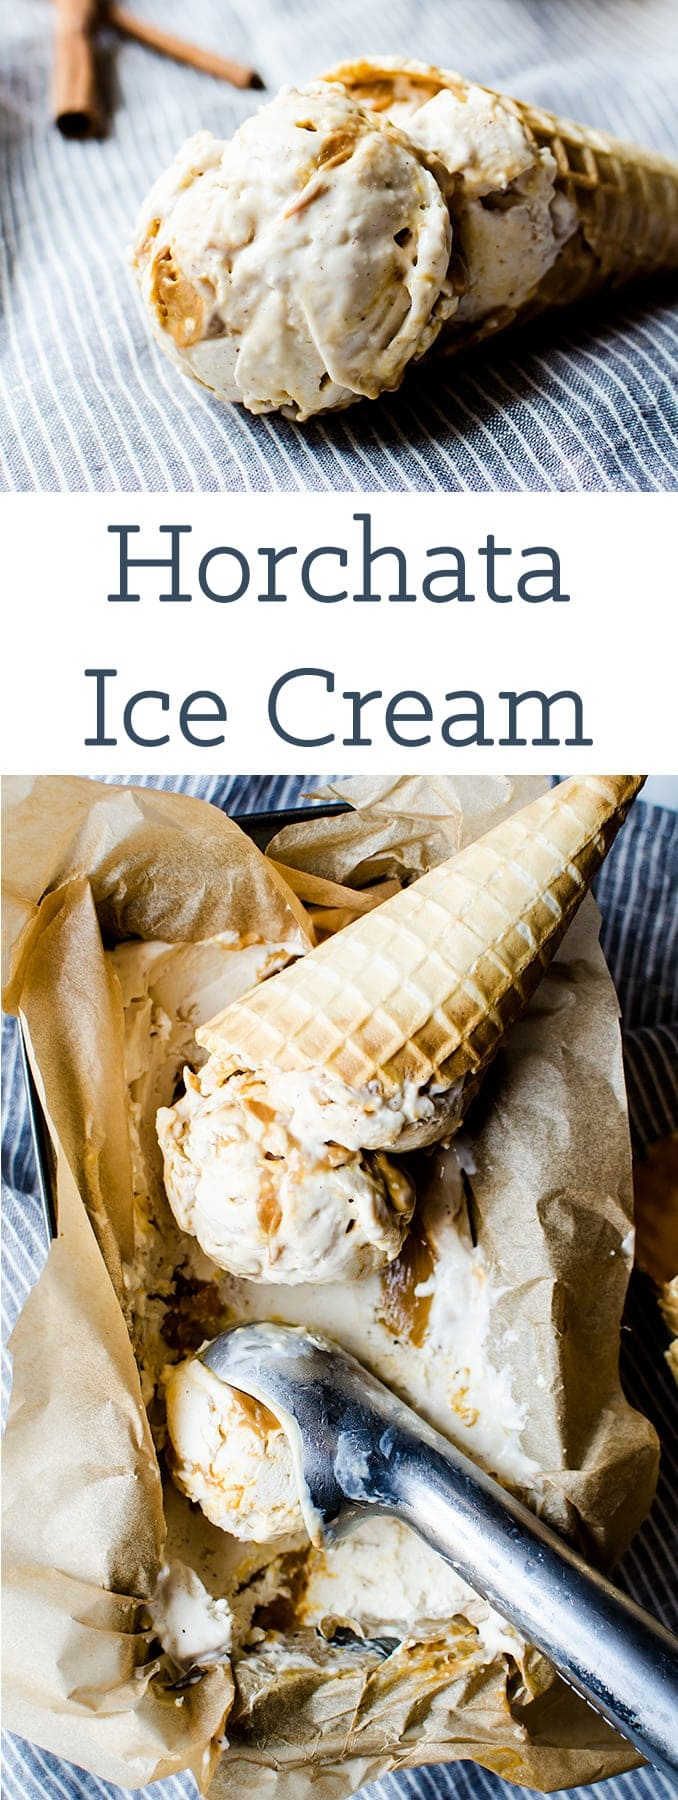 Cool down this summer with a creamy horchata ice cream with dulce de leche swirl